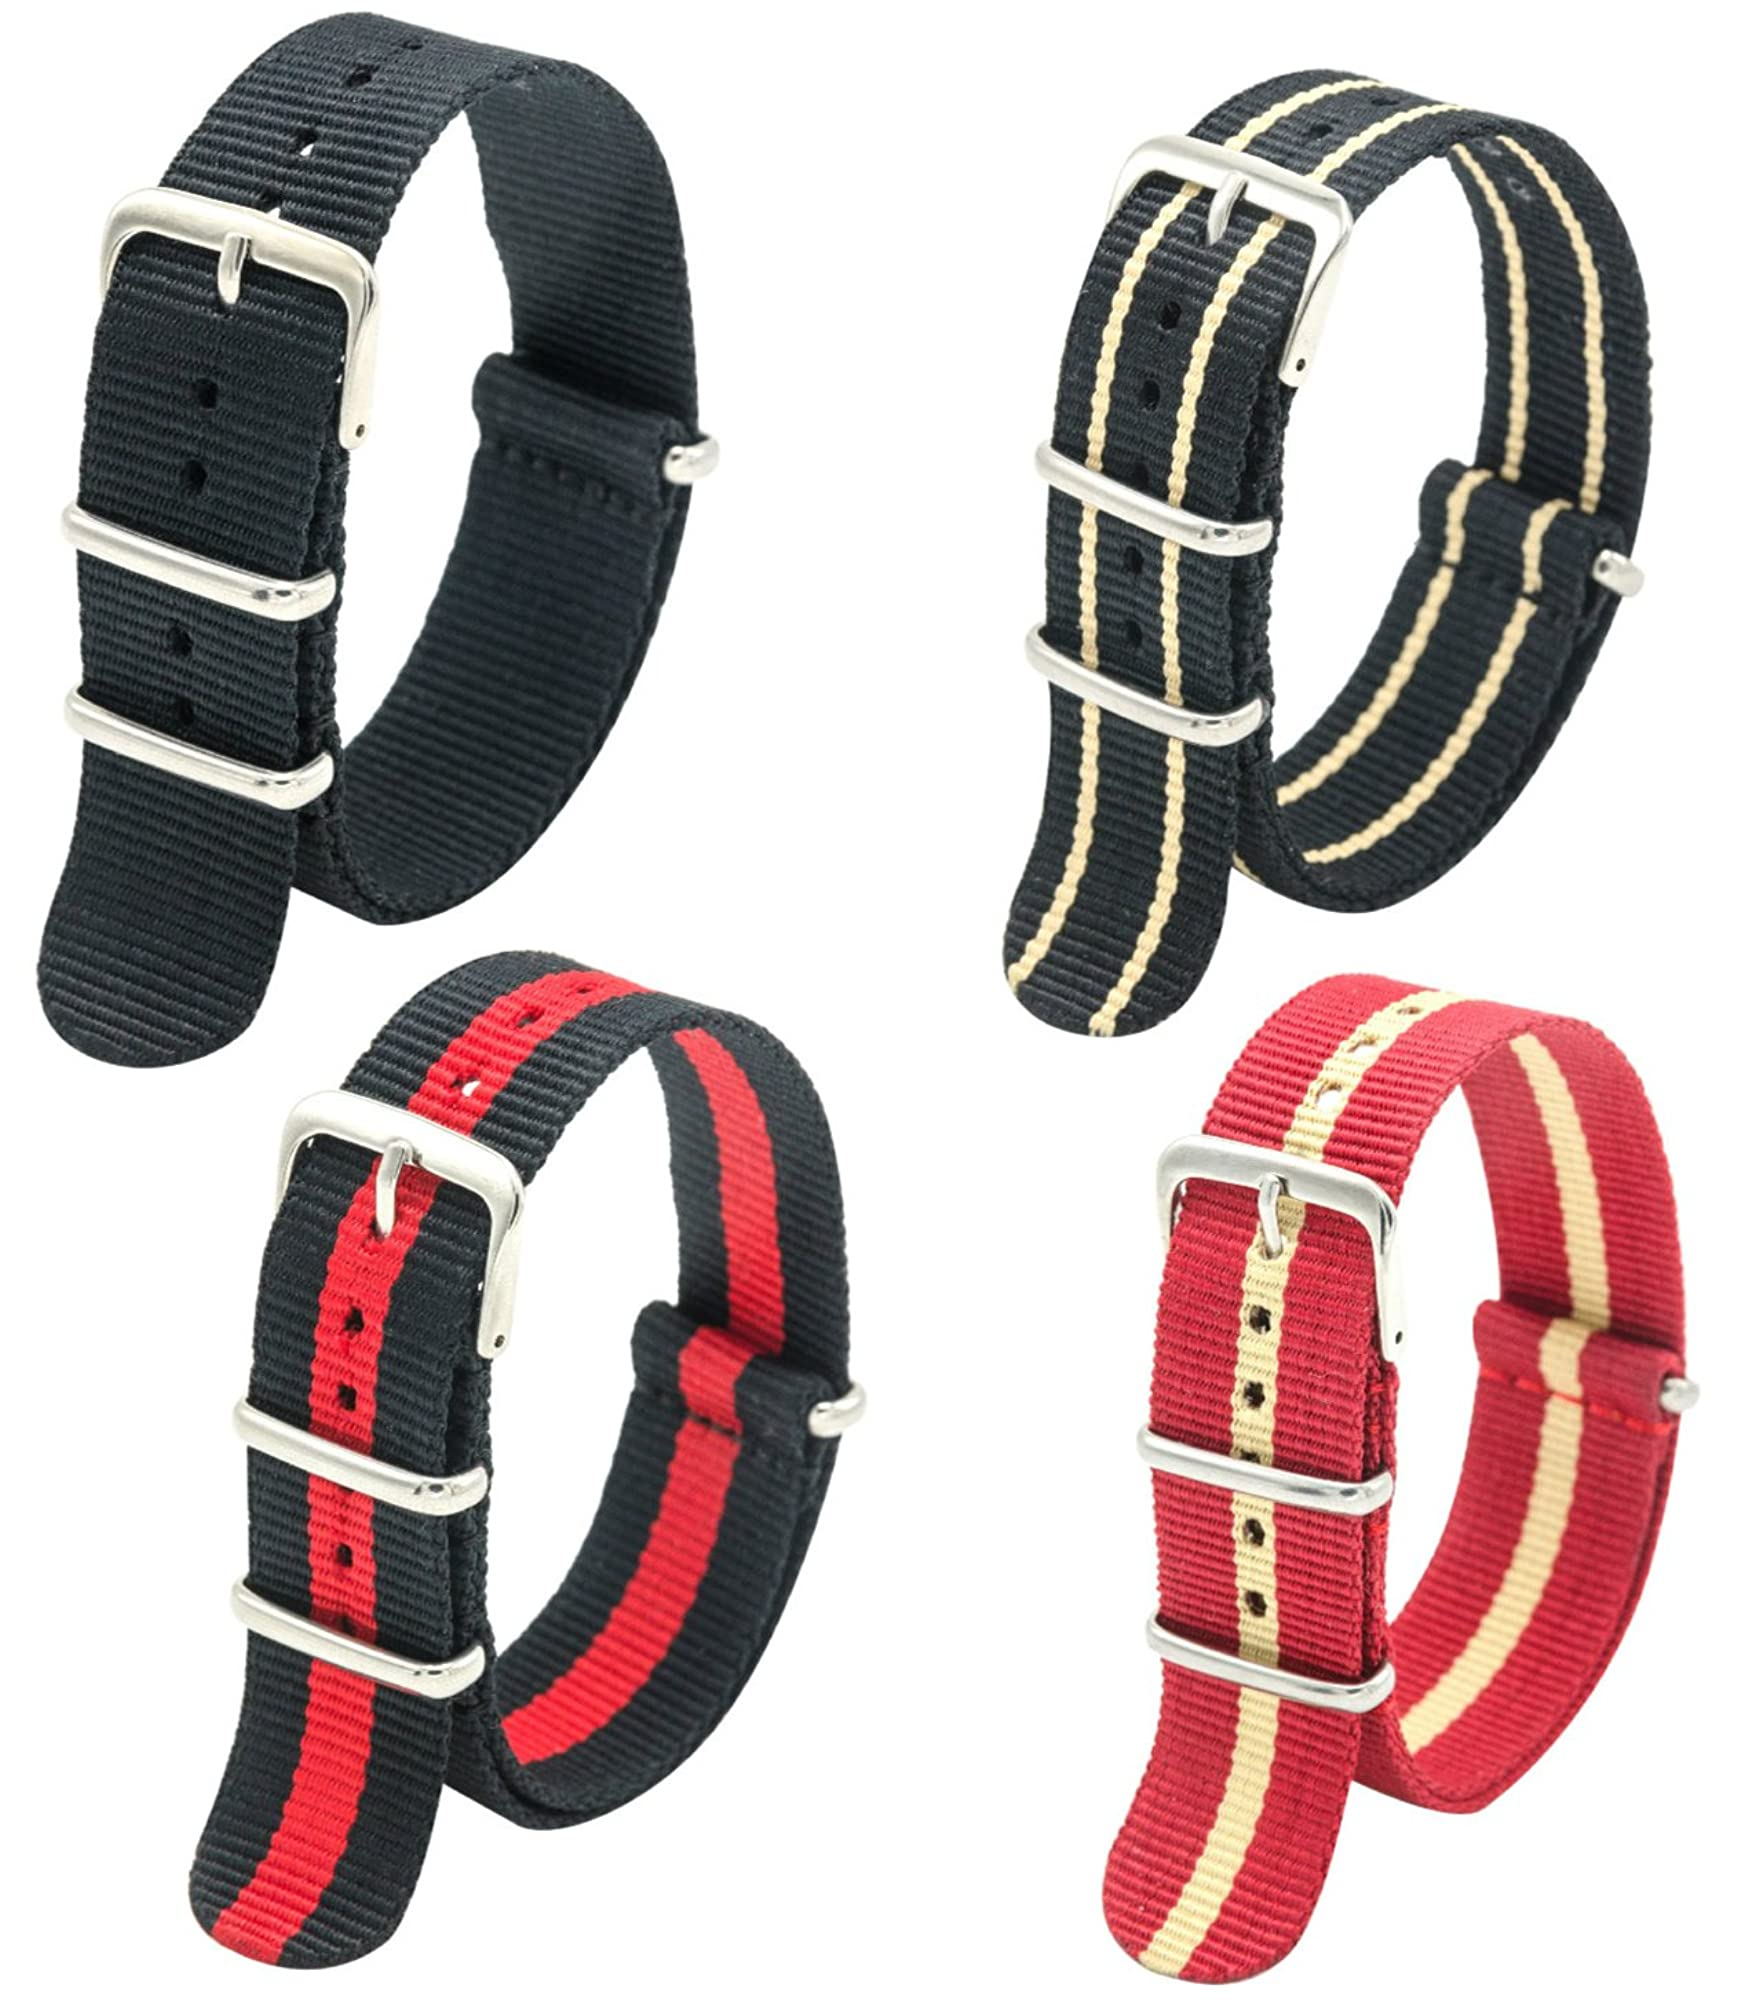 Watch Strap Combo For Men And Women